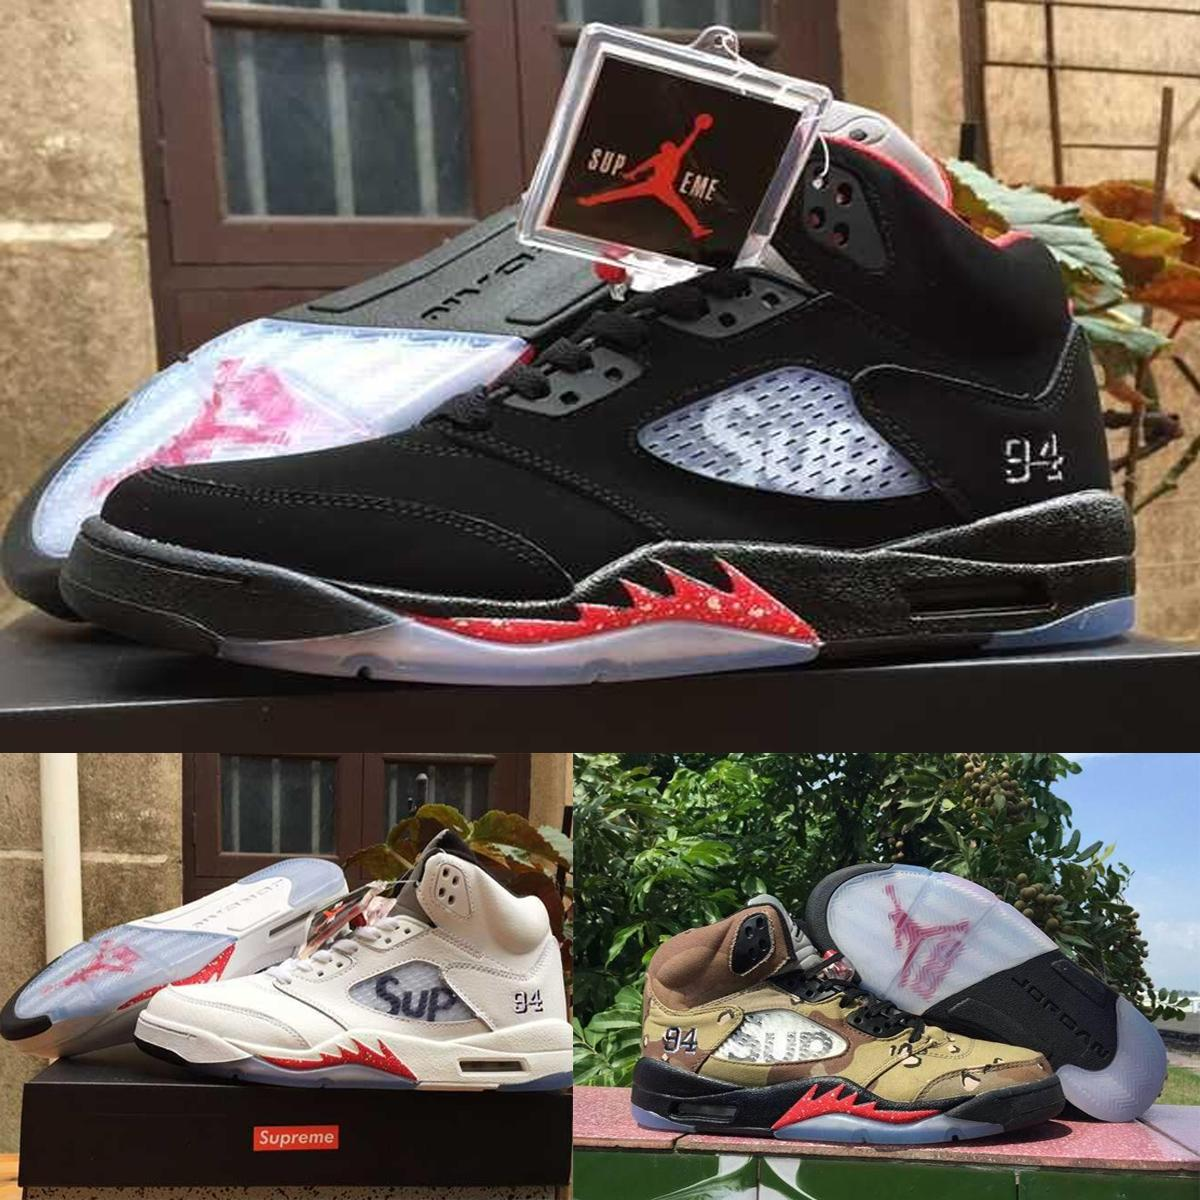 Nike Air Jordan 5 Supreme Retro V Sup 5s Desert Camo Black White Mens  Basketball Shoes,Original Aj5 Retro 5 V Men Sneakers J5s 41 47 Basketball  Shoes For ...